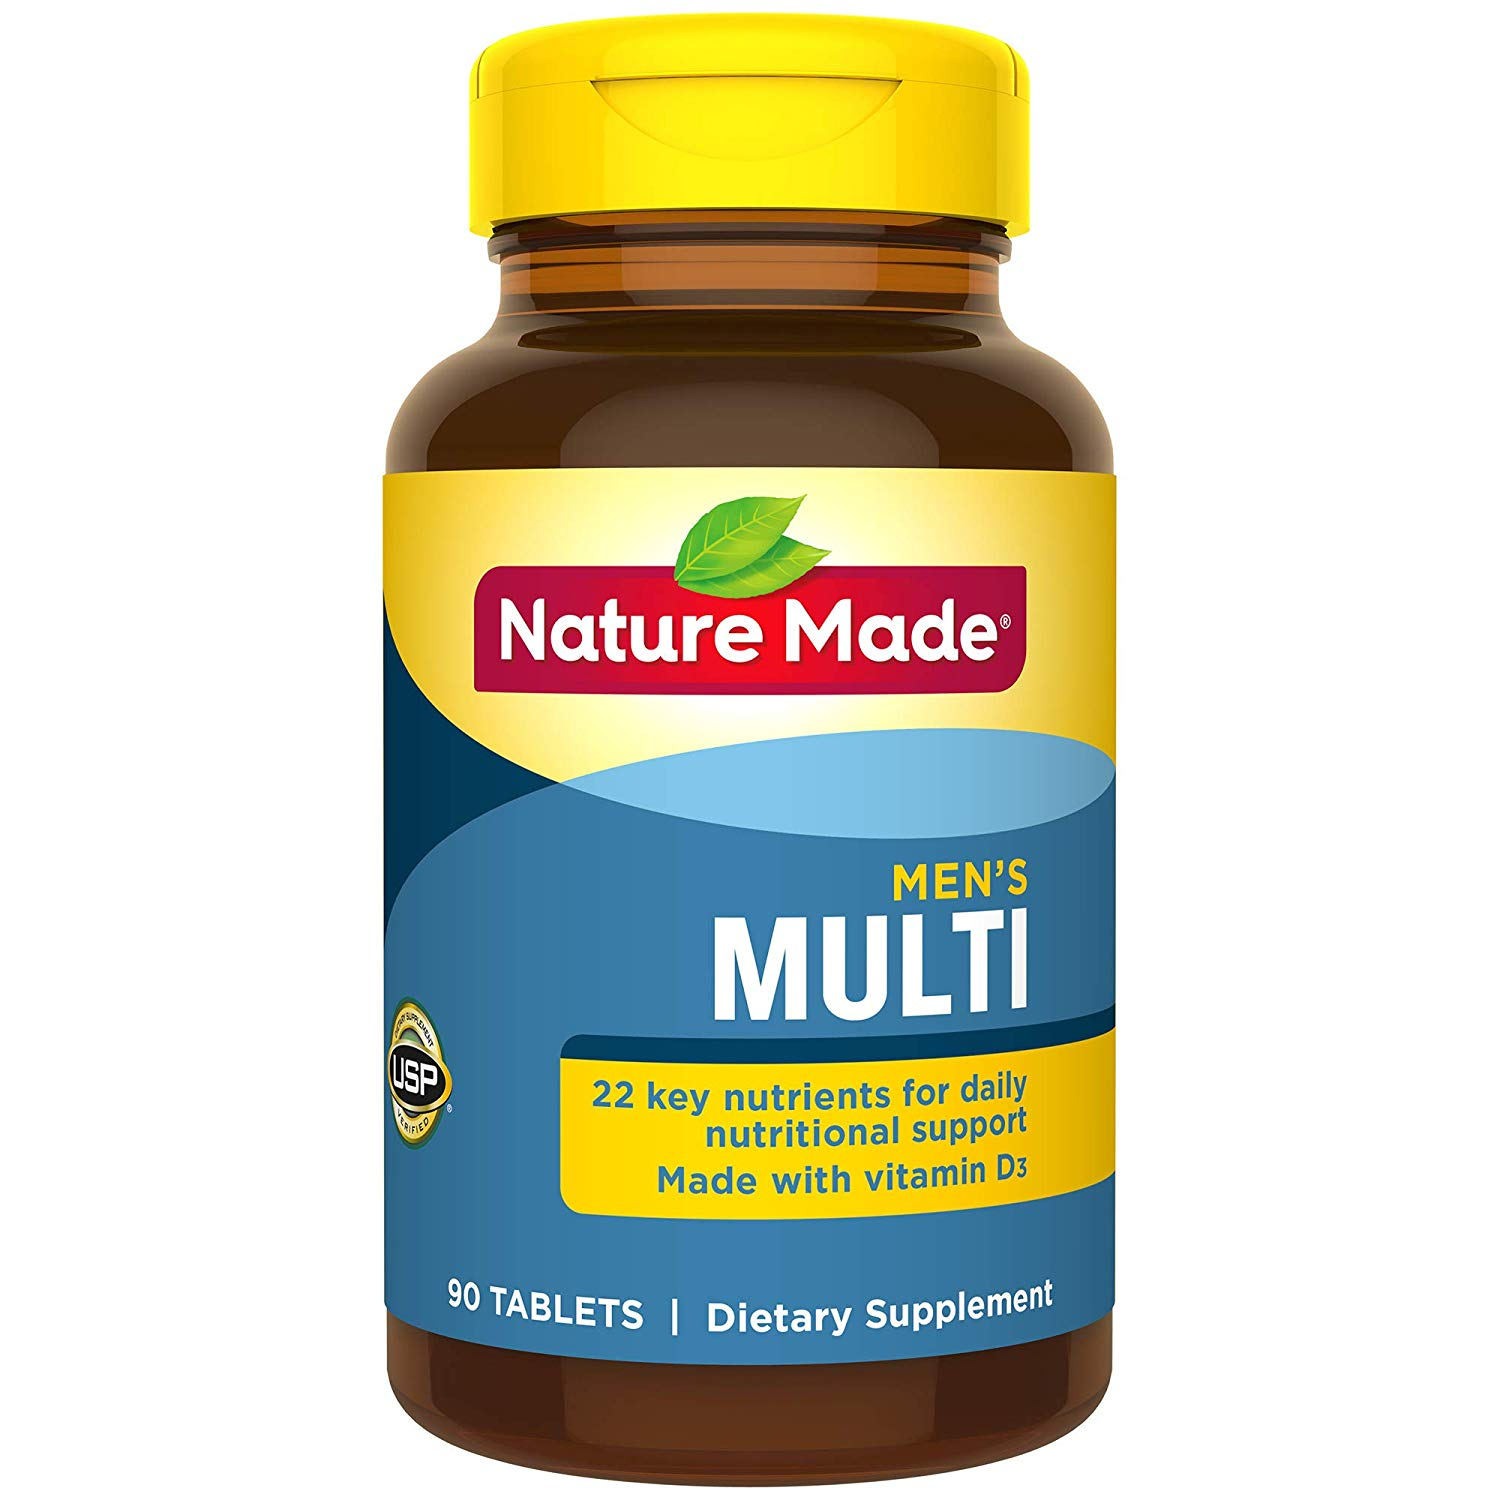 Nature Made Men's Multivitamin Tablets